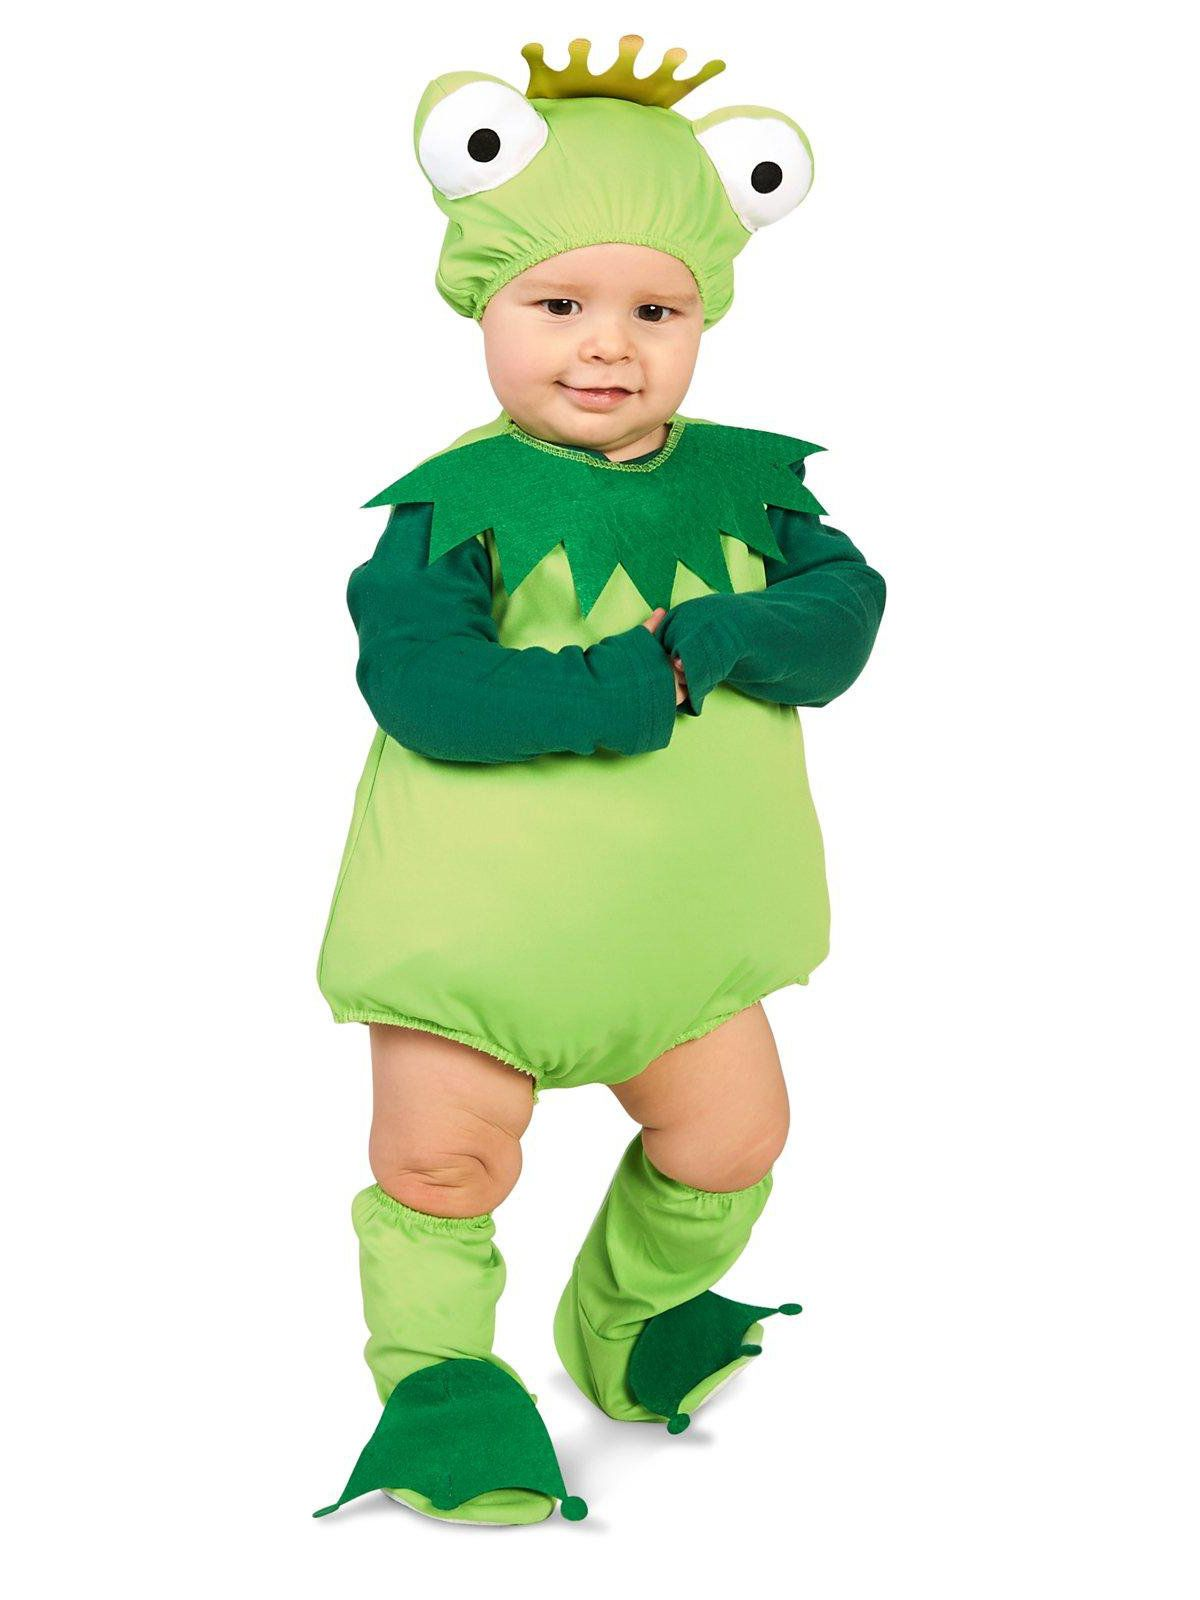 Baby Frog Prince Costume For Babies  sc 1 st  Wholesale Halloween Costumes & Baby Frog Prince Costume For Babies | Wholesale Halloween Costumes